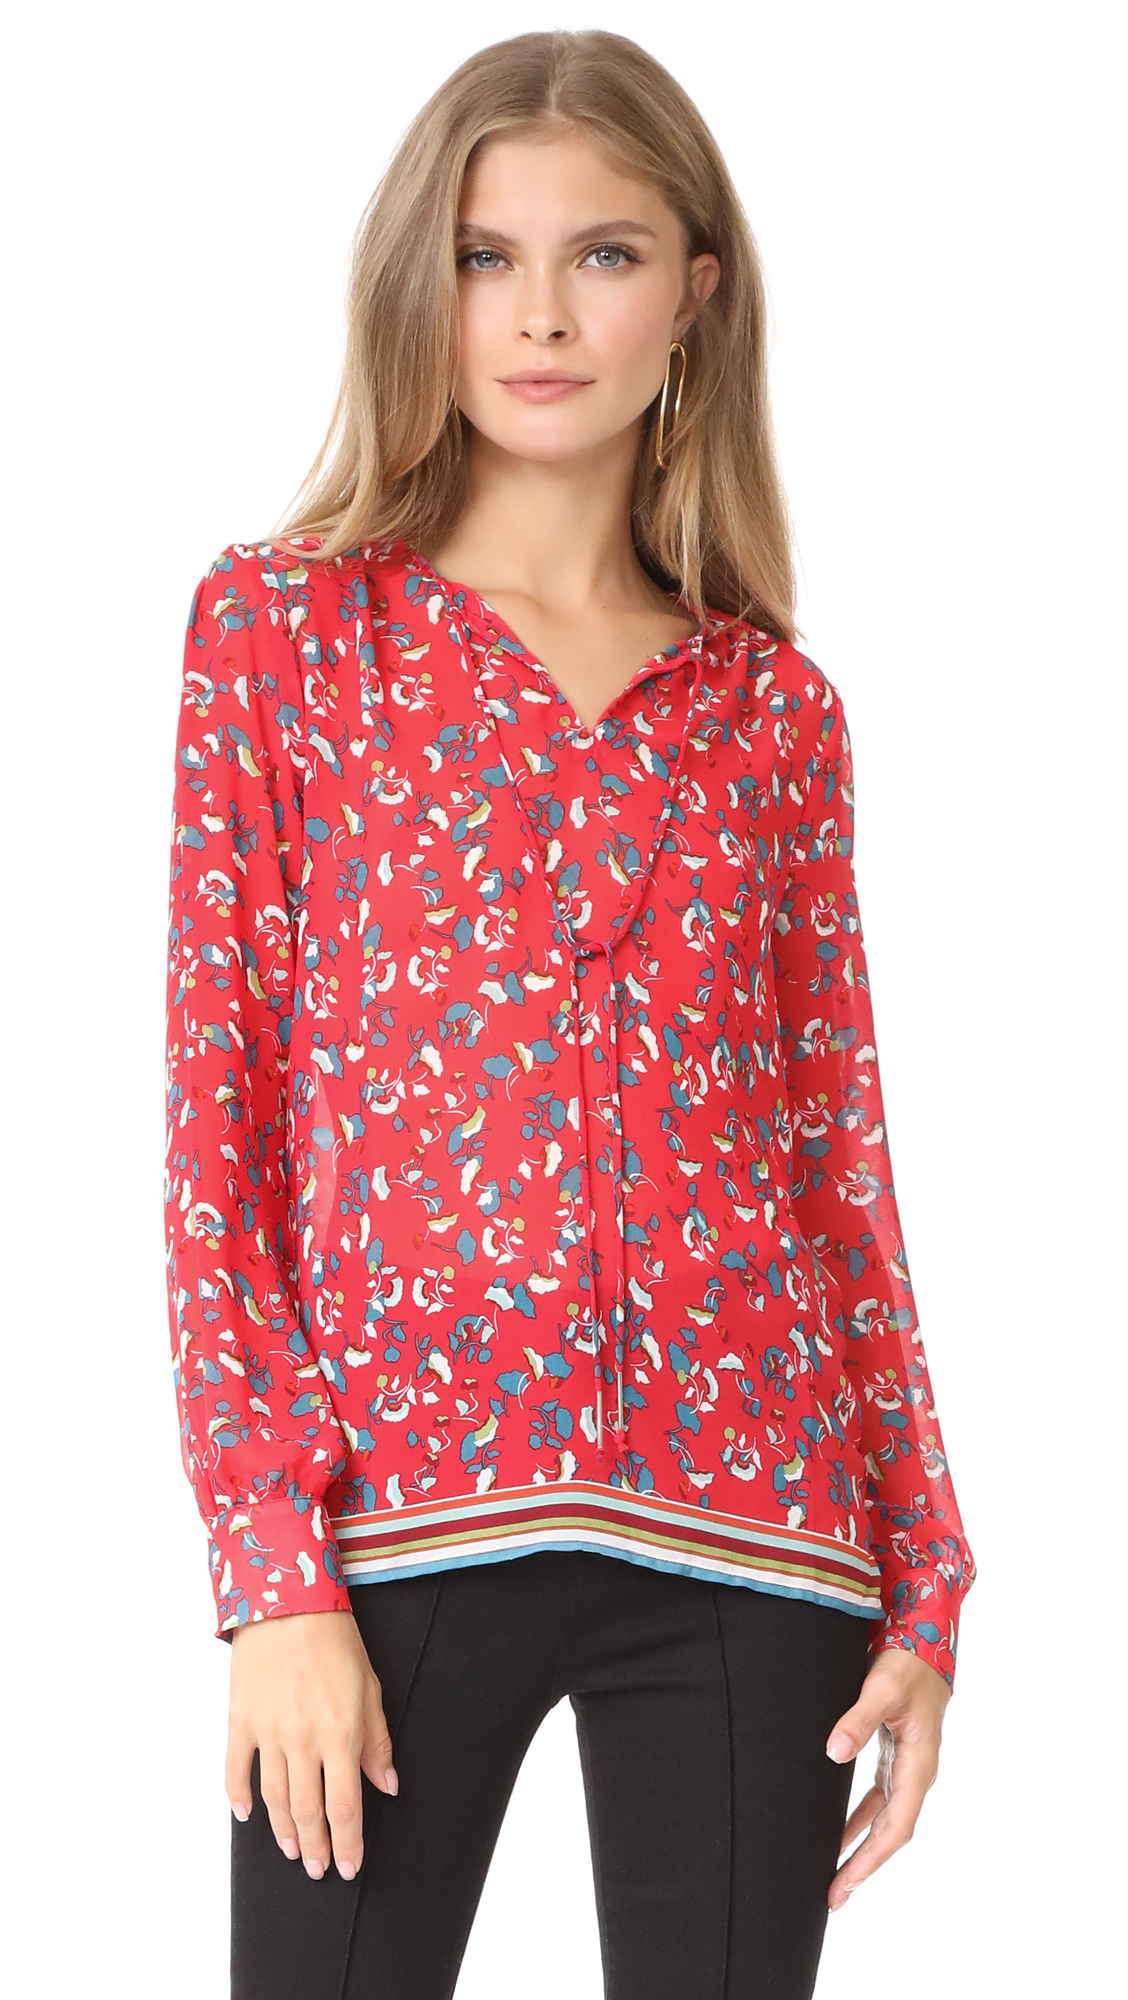 Suncoo Lucille Top - 55% Off Sale